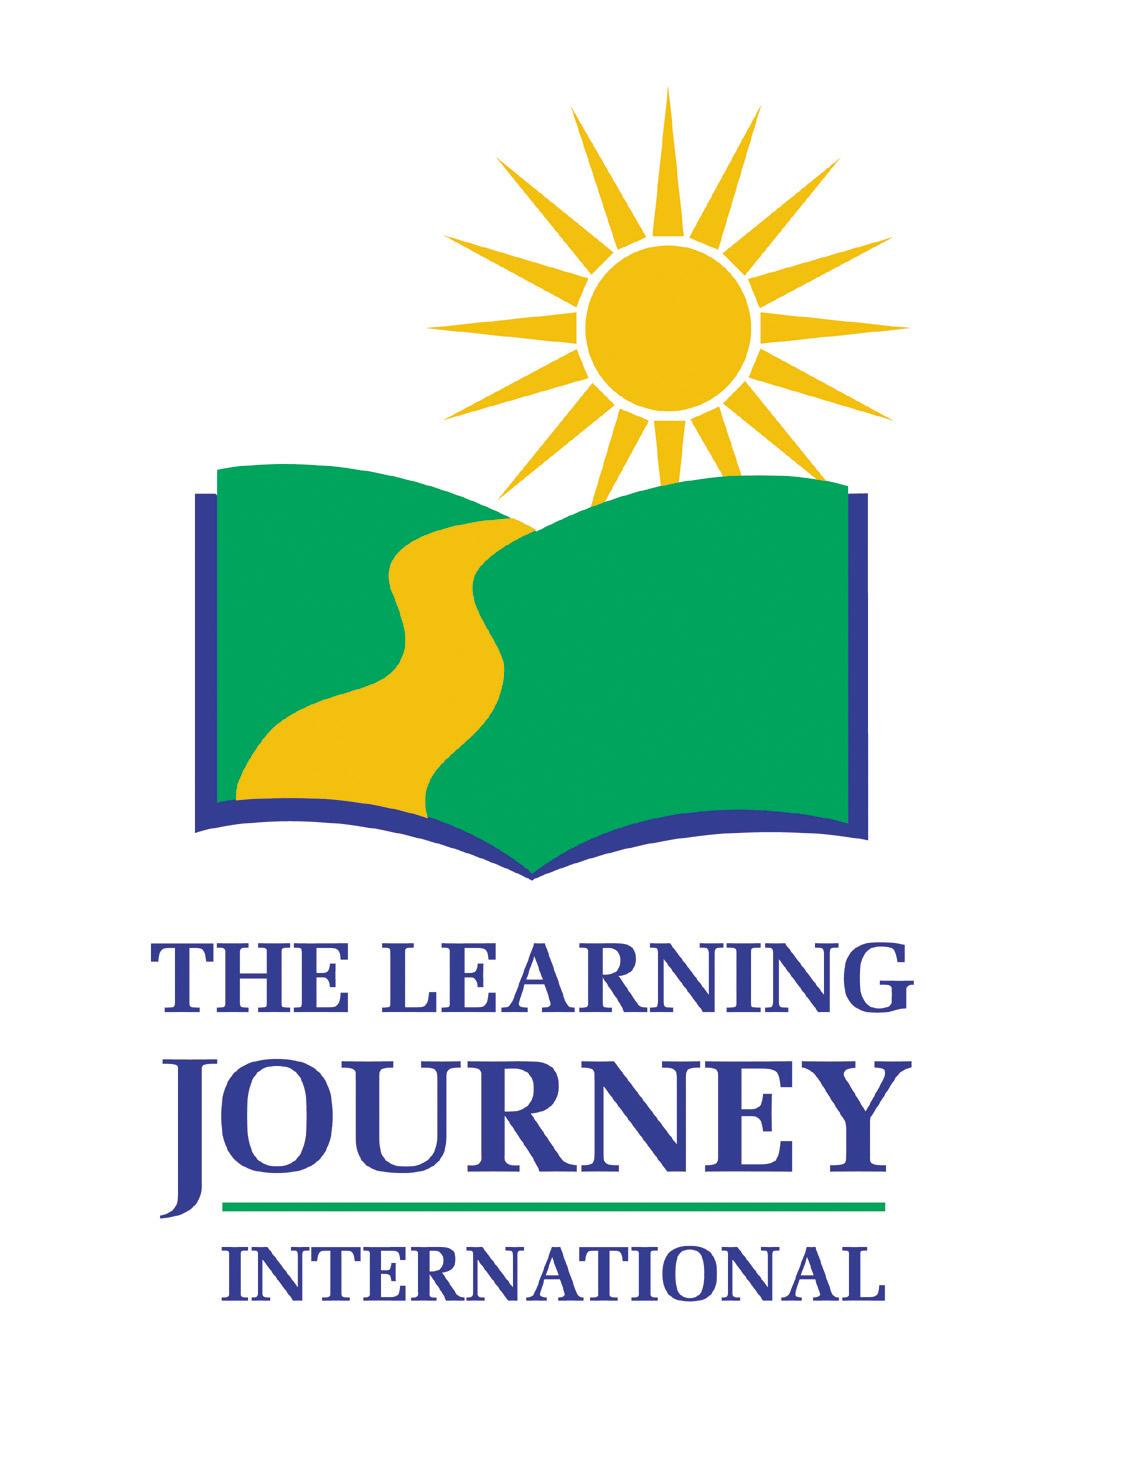 Amazon.com: The Learning Journey: Learn with Me, Color Fun Fish Bowl ...